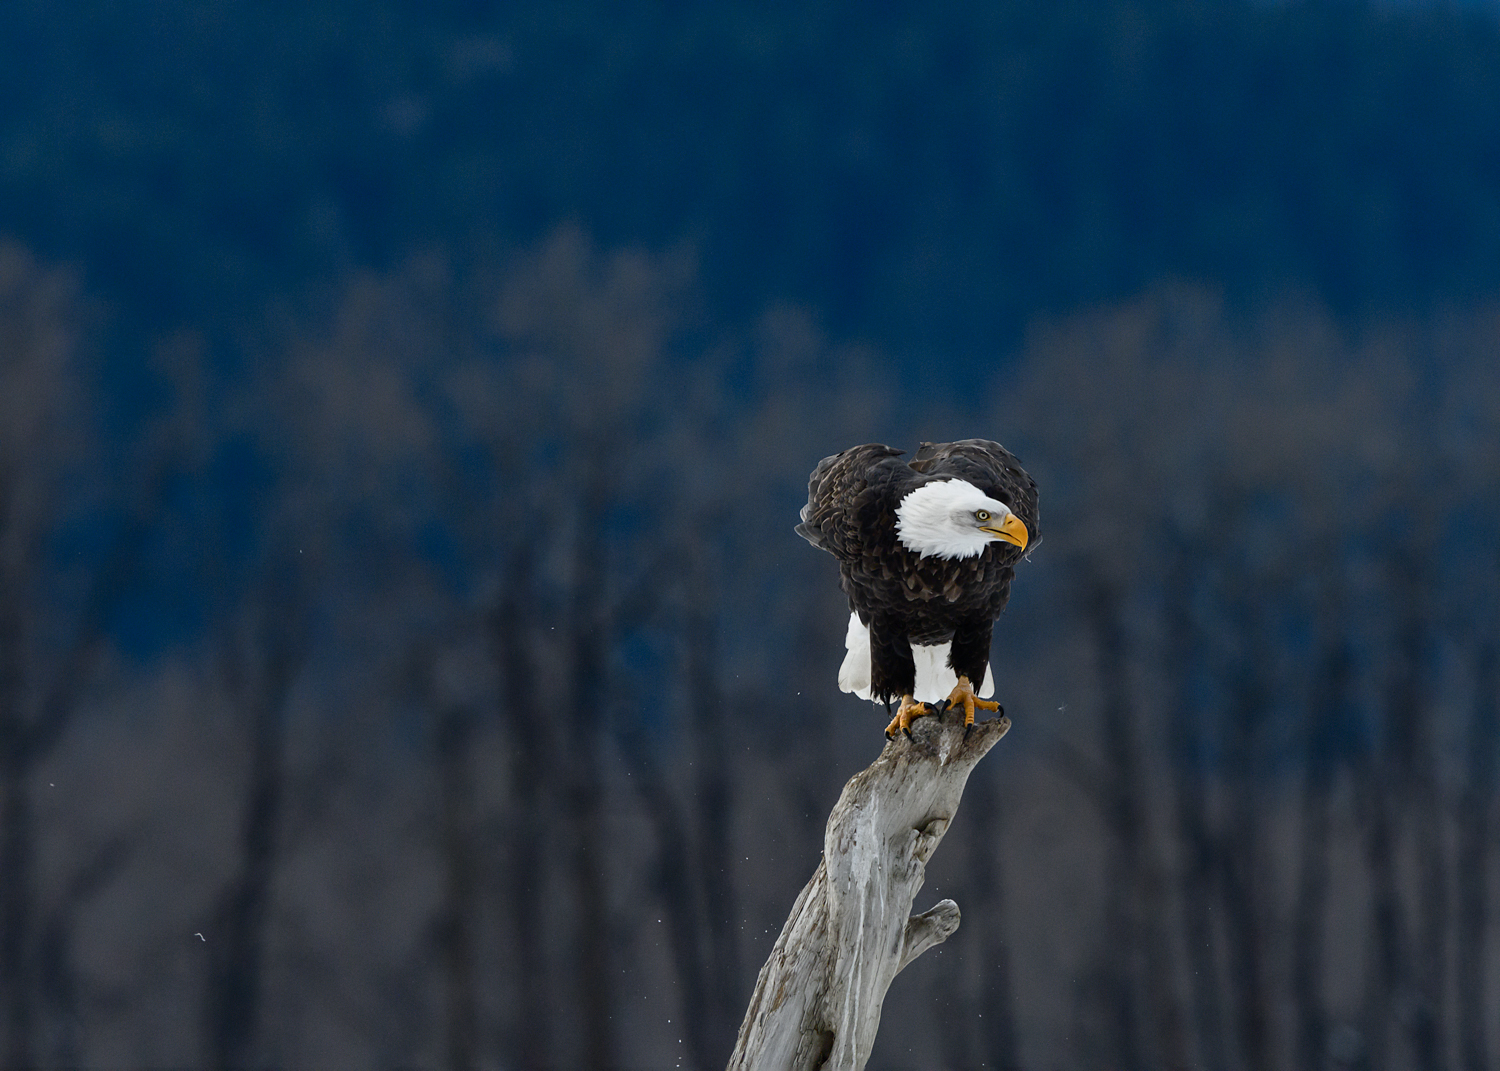 Bald Eagle - Chilkat Bald Eagle Preserve - Nov. 2017